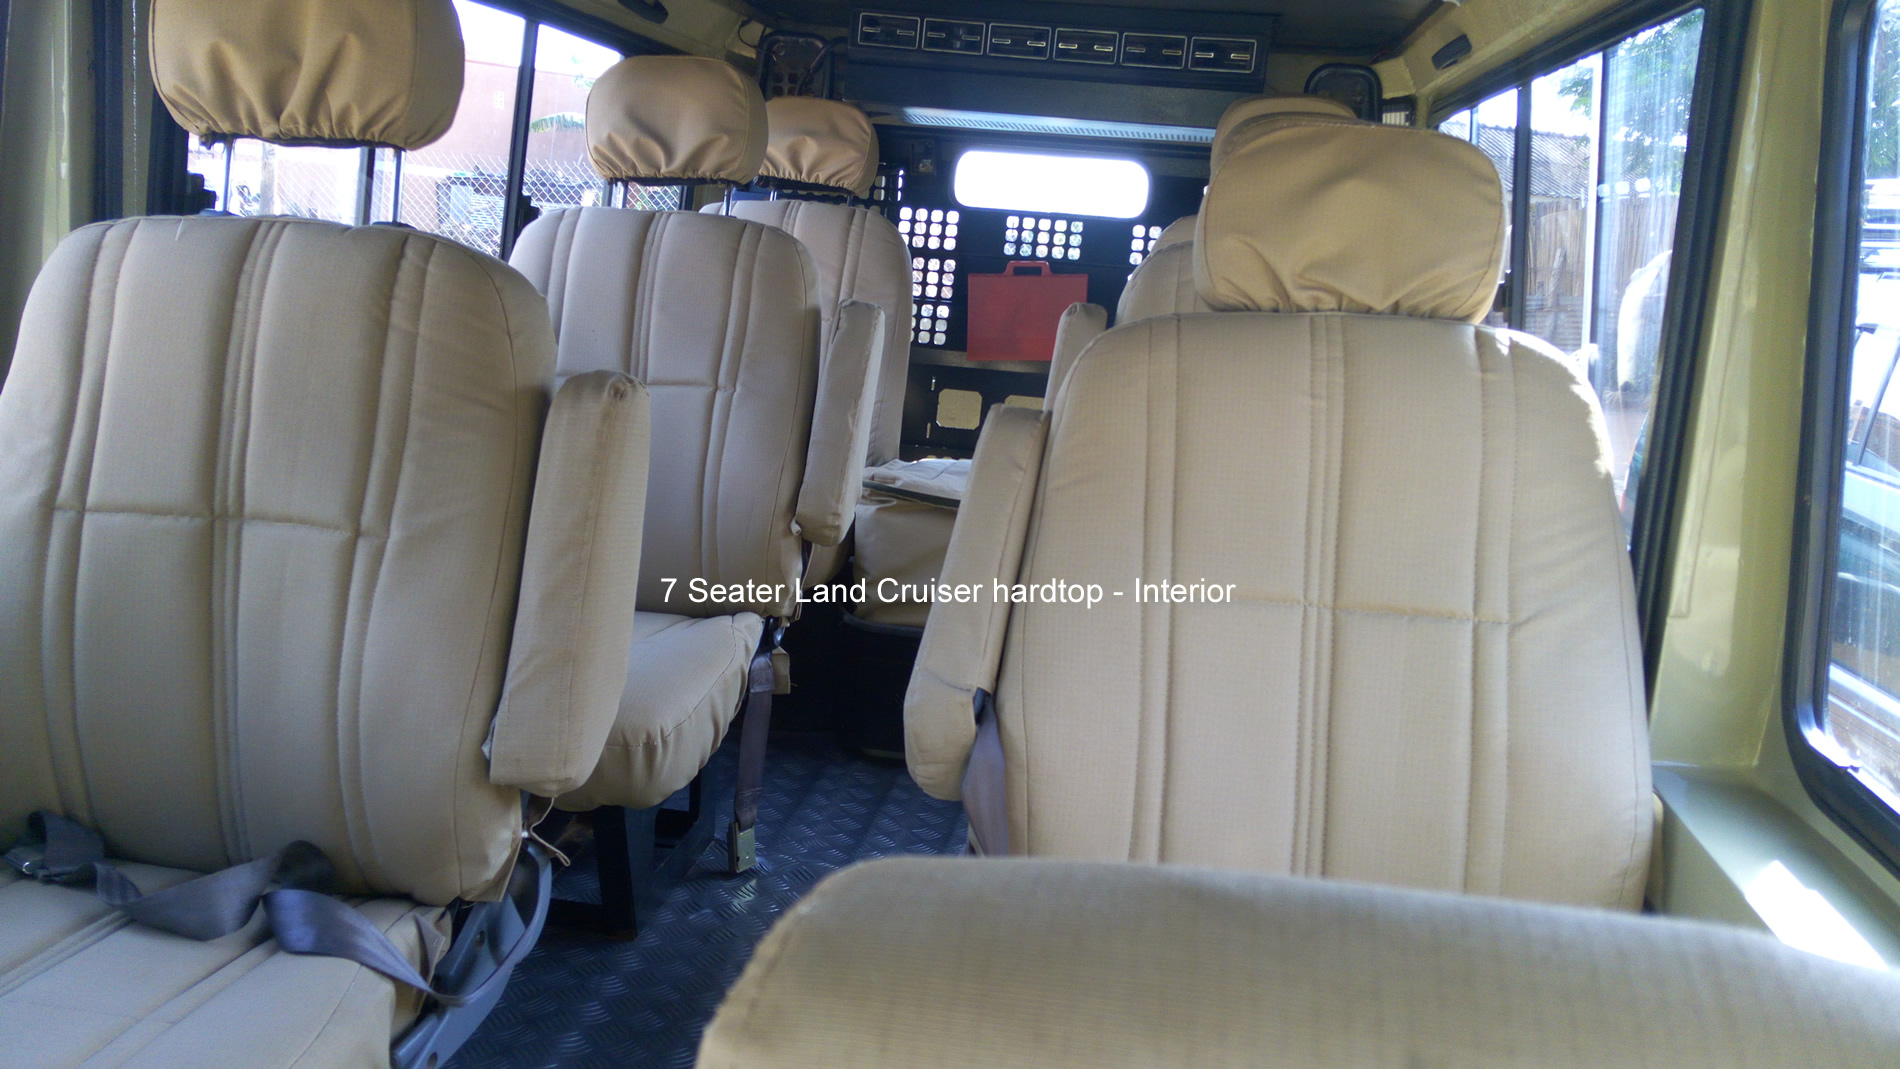 Land Cruiser Hardtop Interior